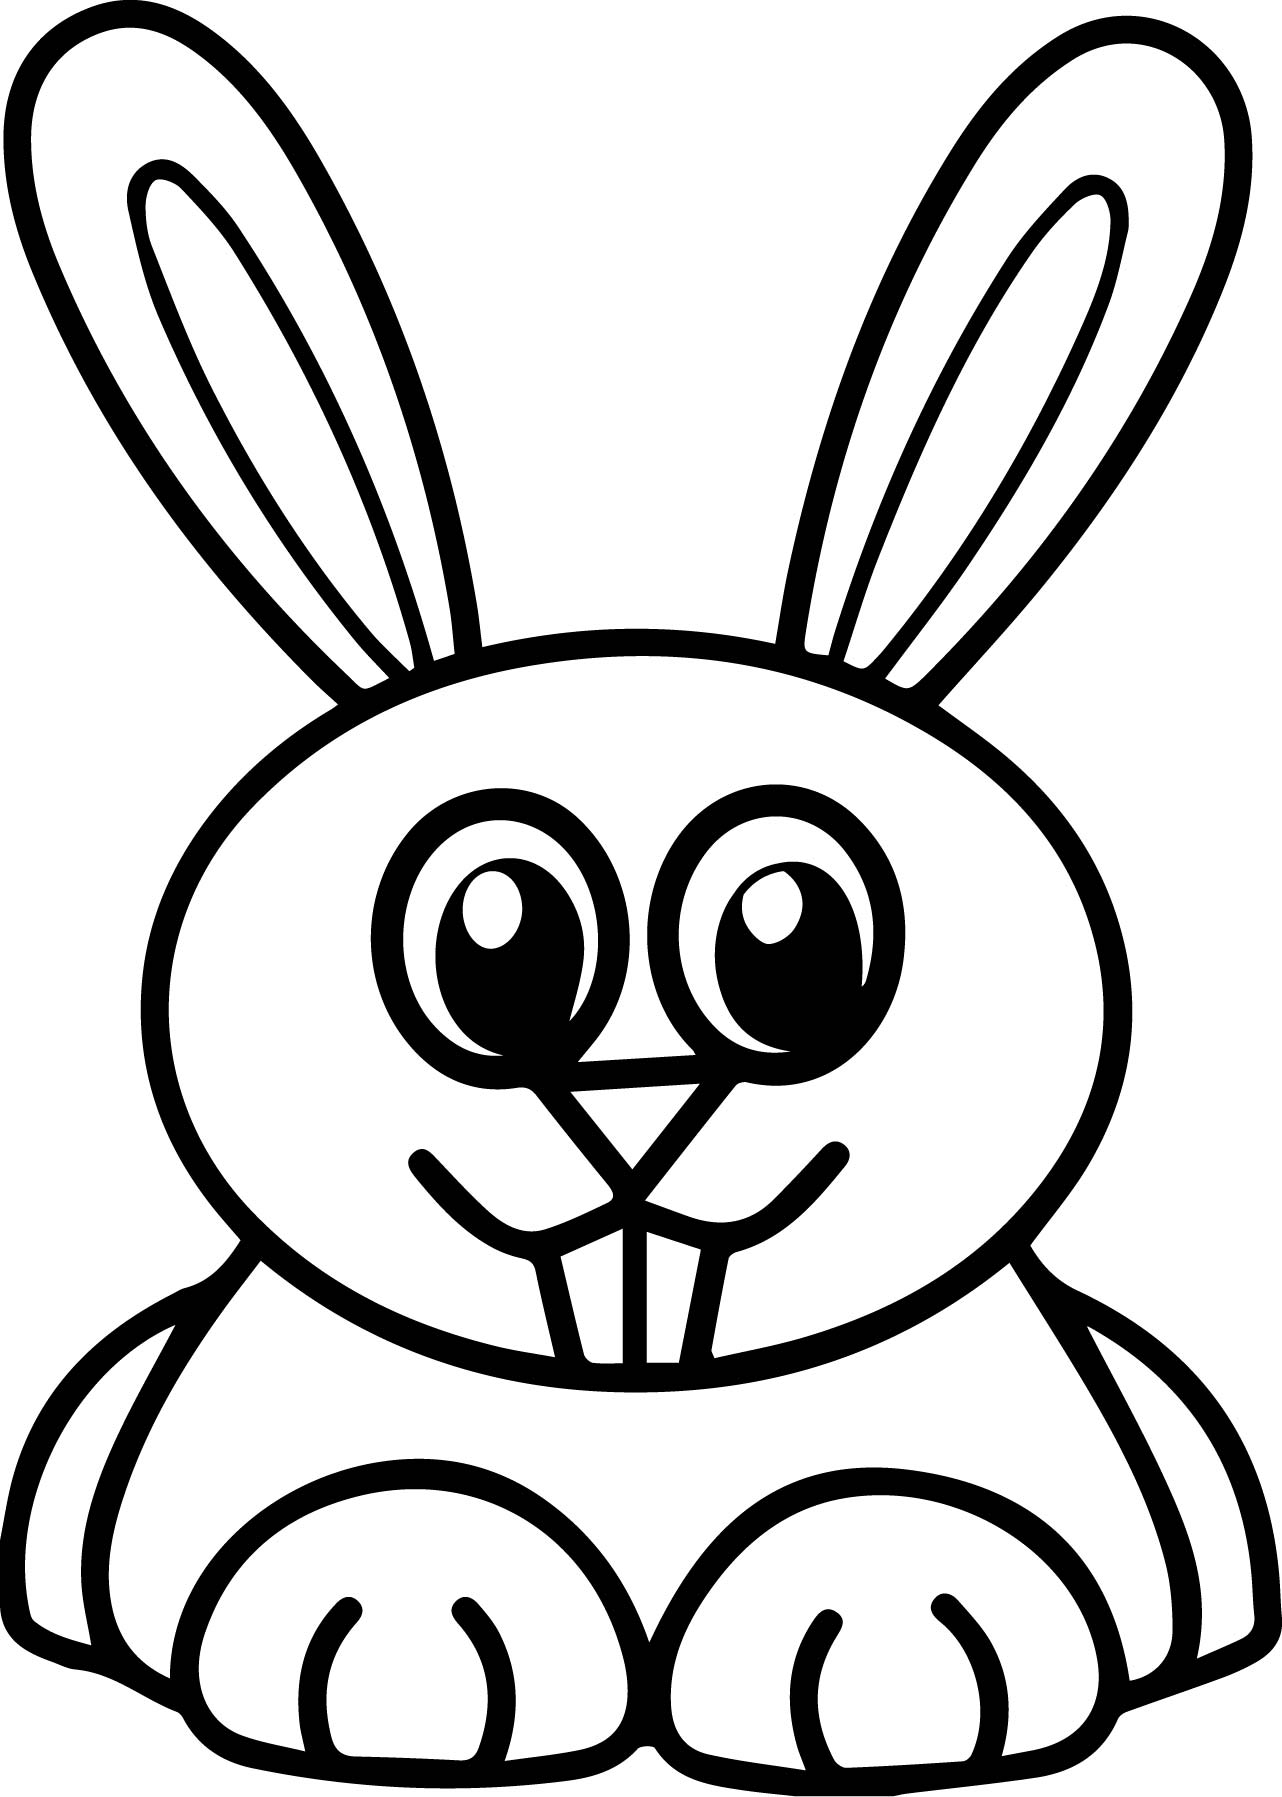 Rabbit Aurore Very Cute Coloring Page